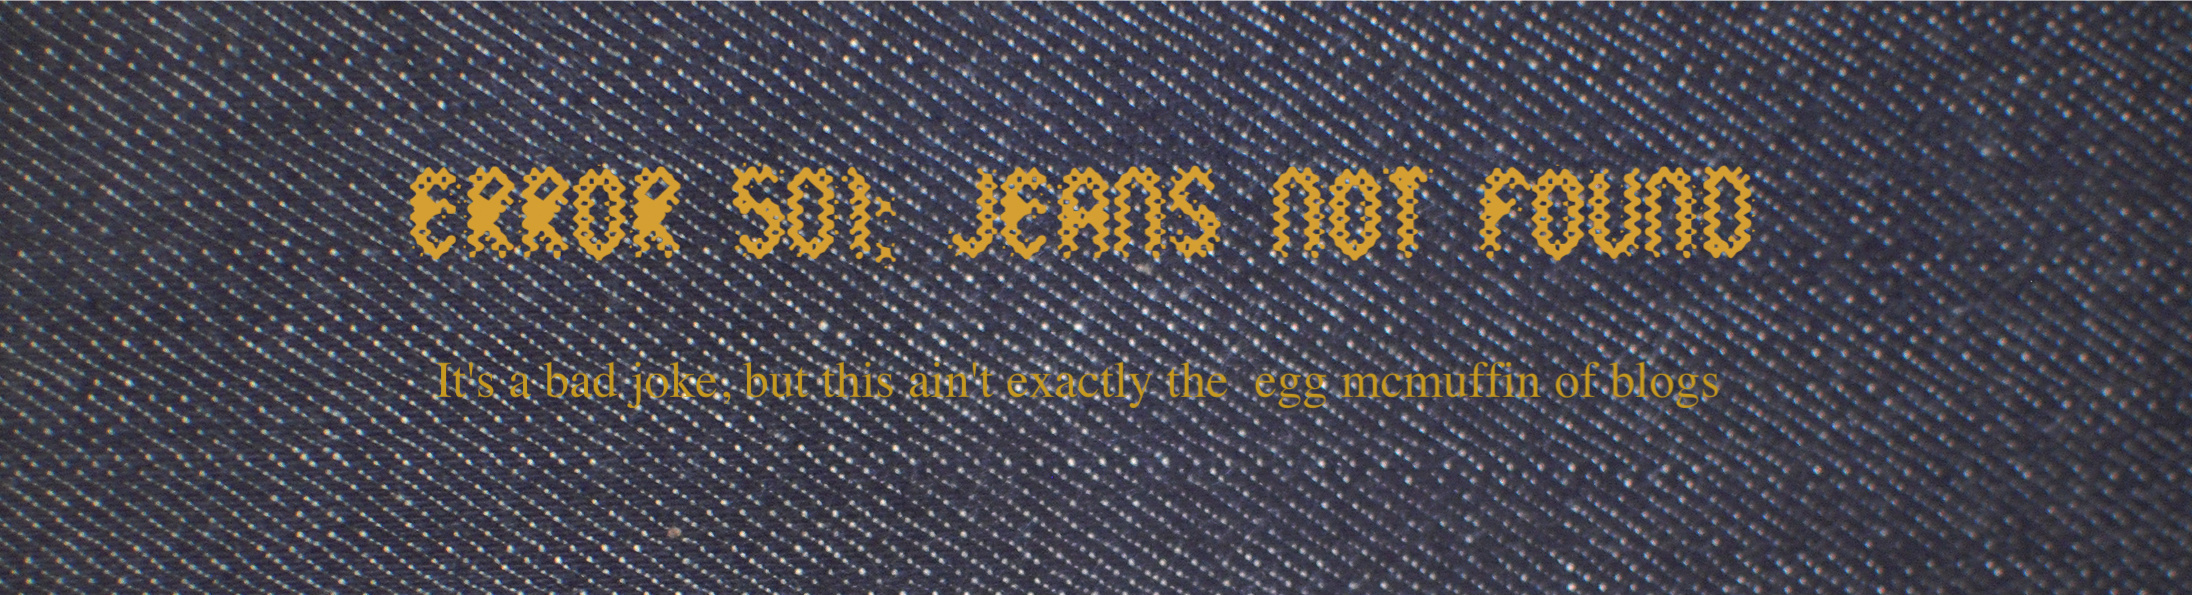 Error 501: Jeans Not Found